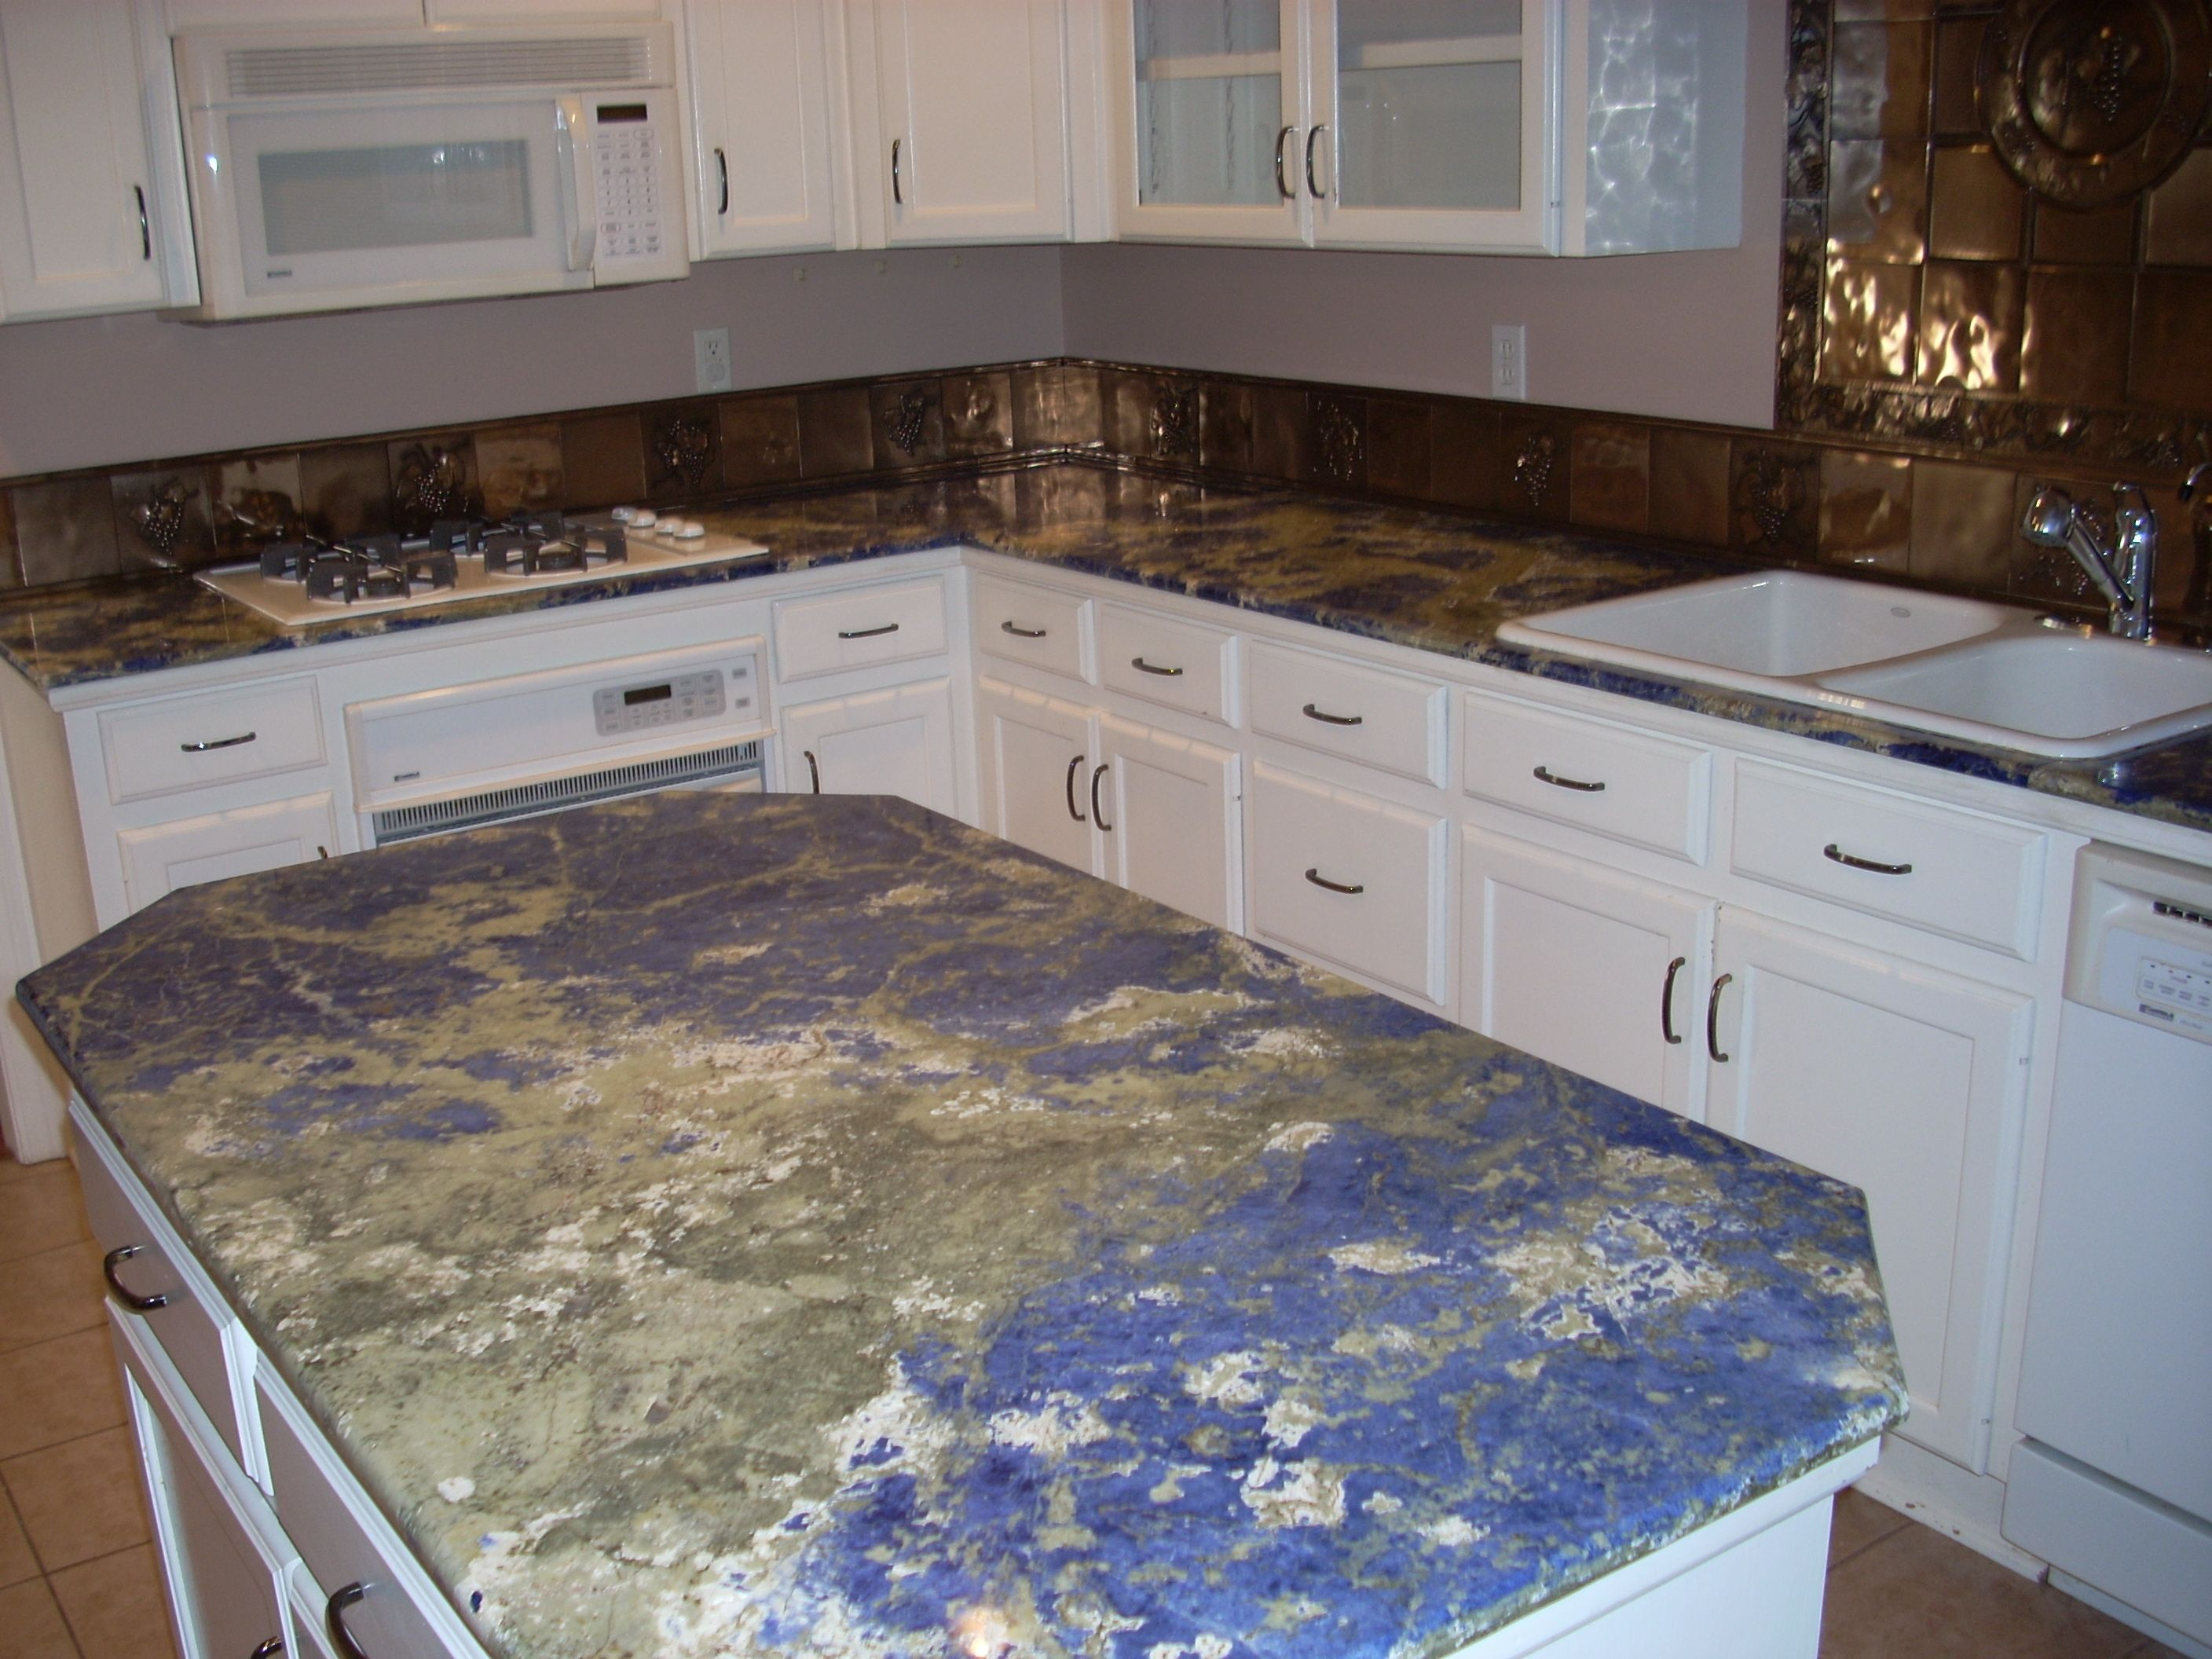 Sodalite Blue Granite Countertops. Amazing Texture Variation. Looks